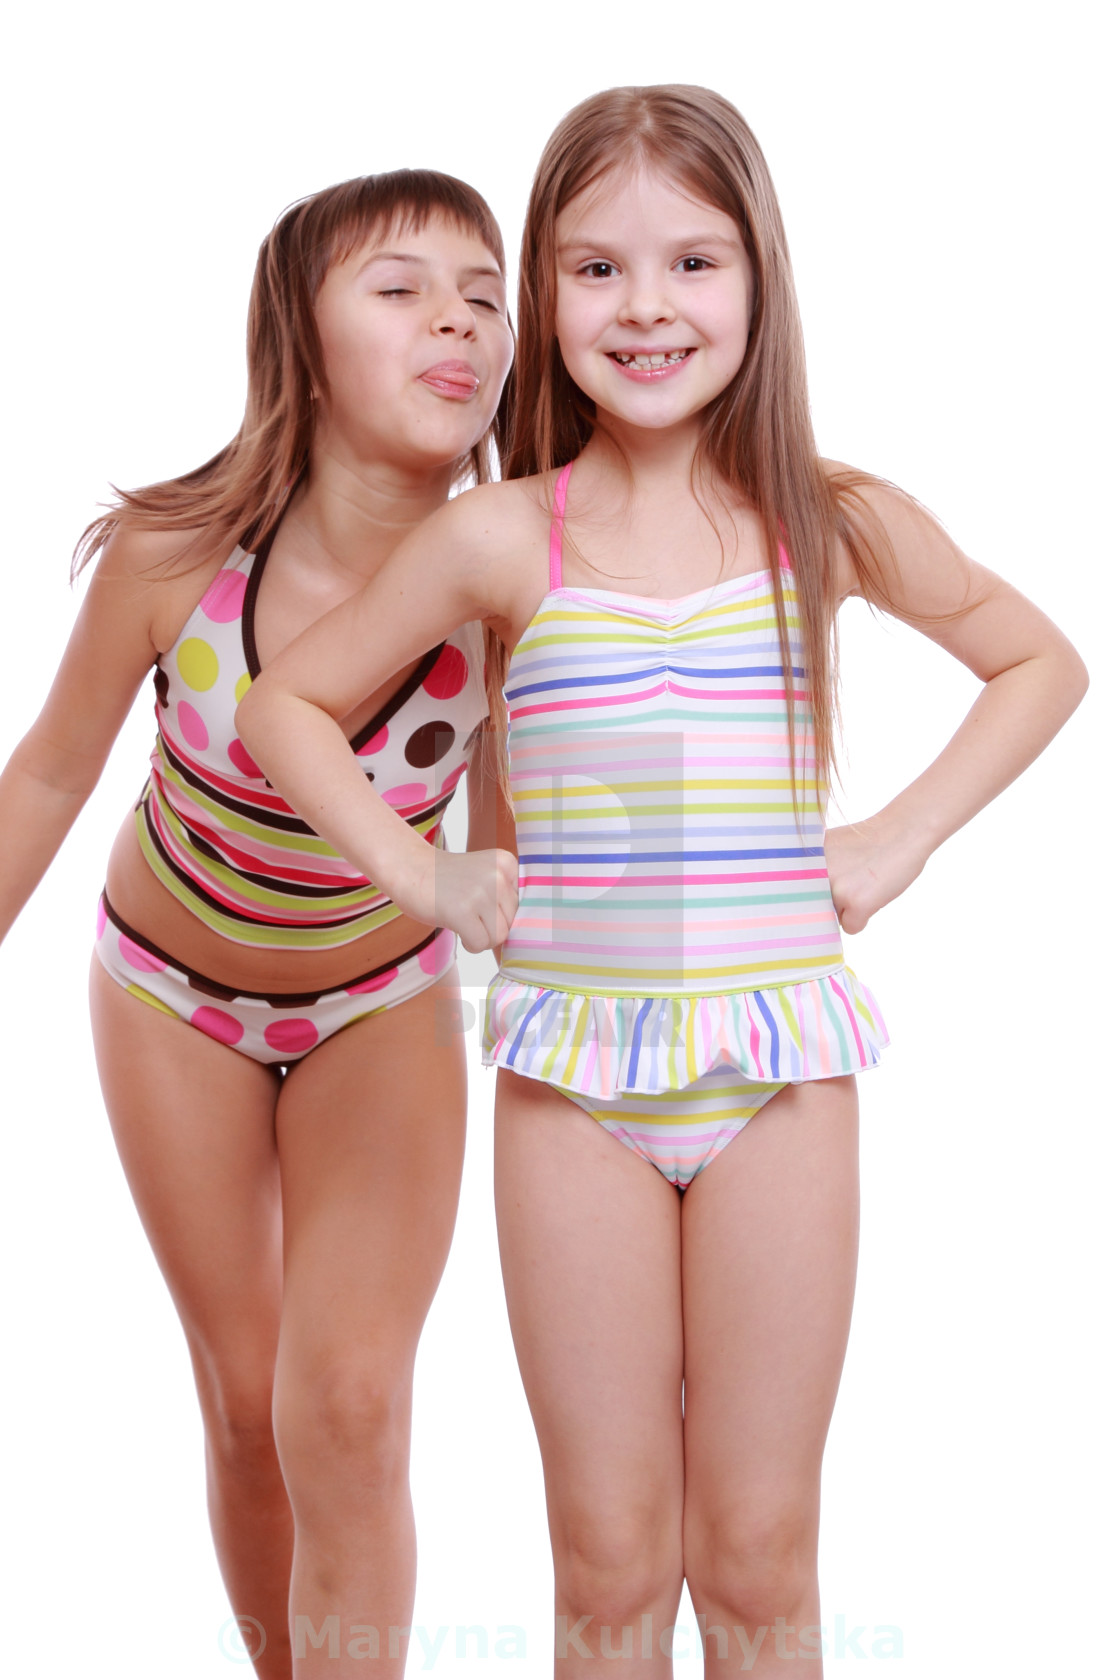 young girls in tight swimwear 1120x1680  image may not load, and orphans will not send money